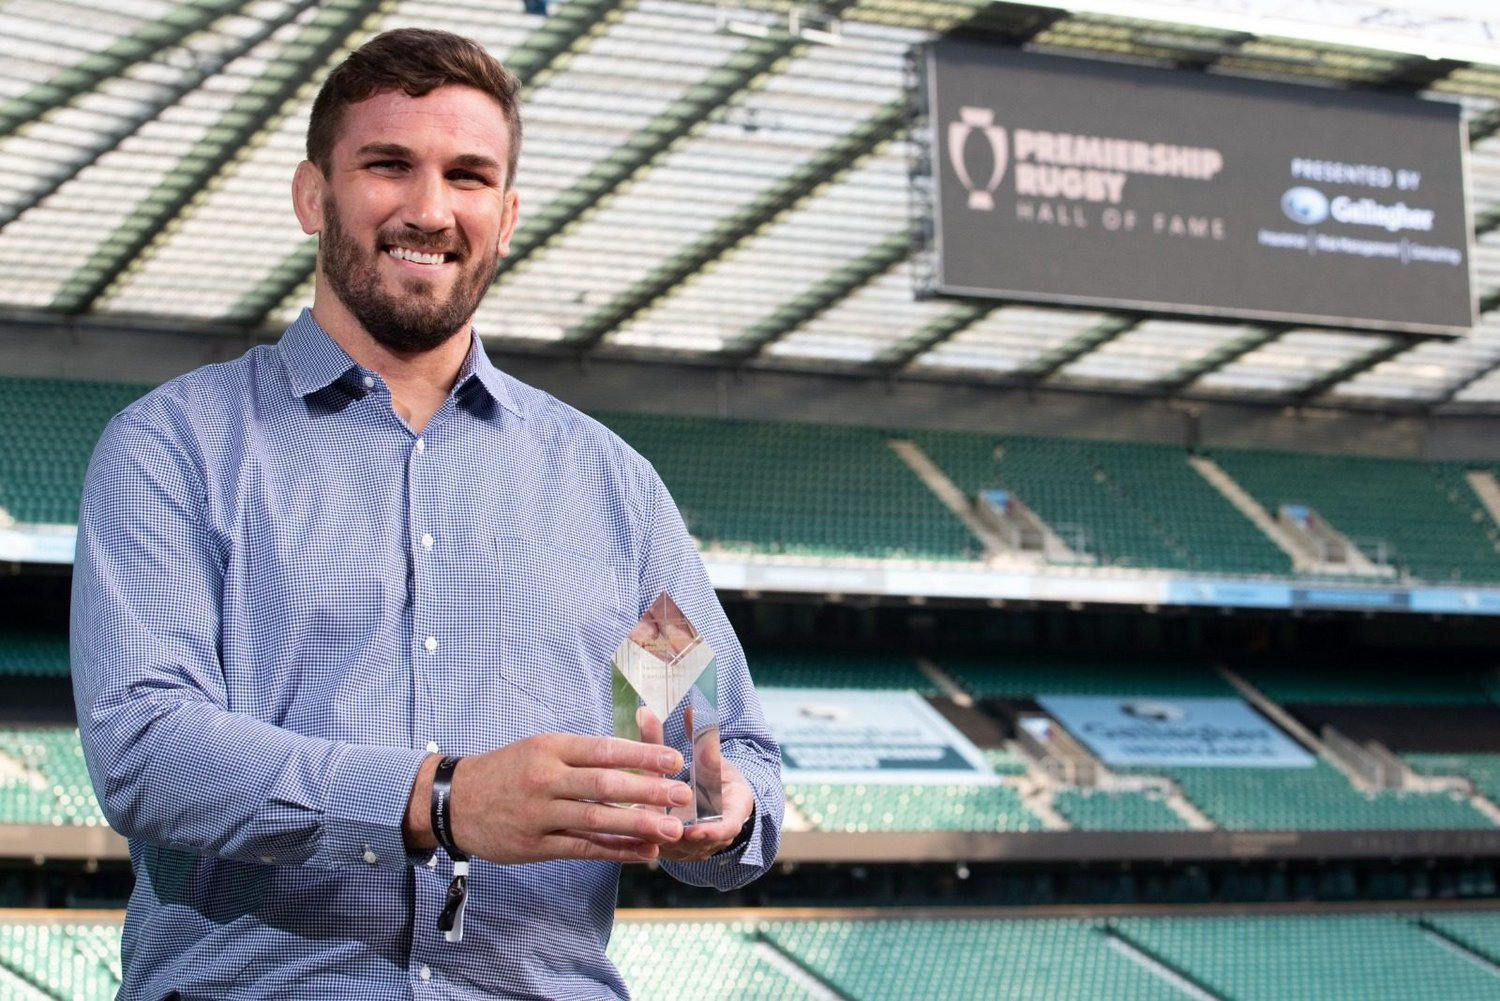 Former Saints lock Christian Day has been inducted into the Premiership Rugby Hall of Fame.